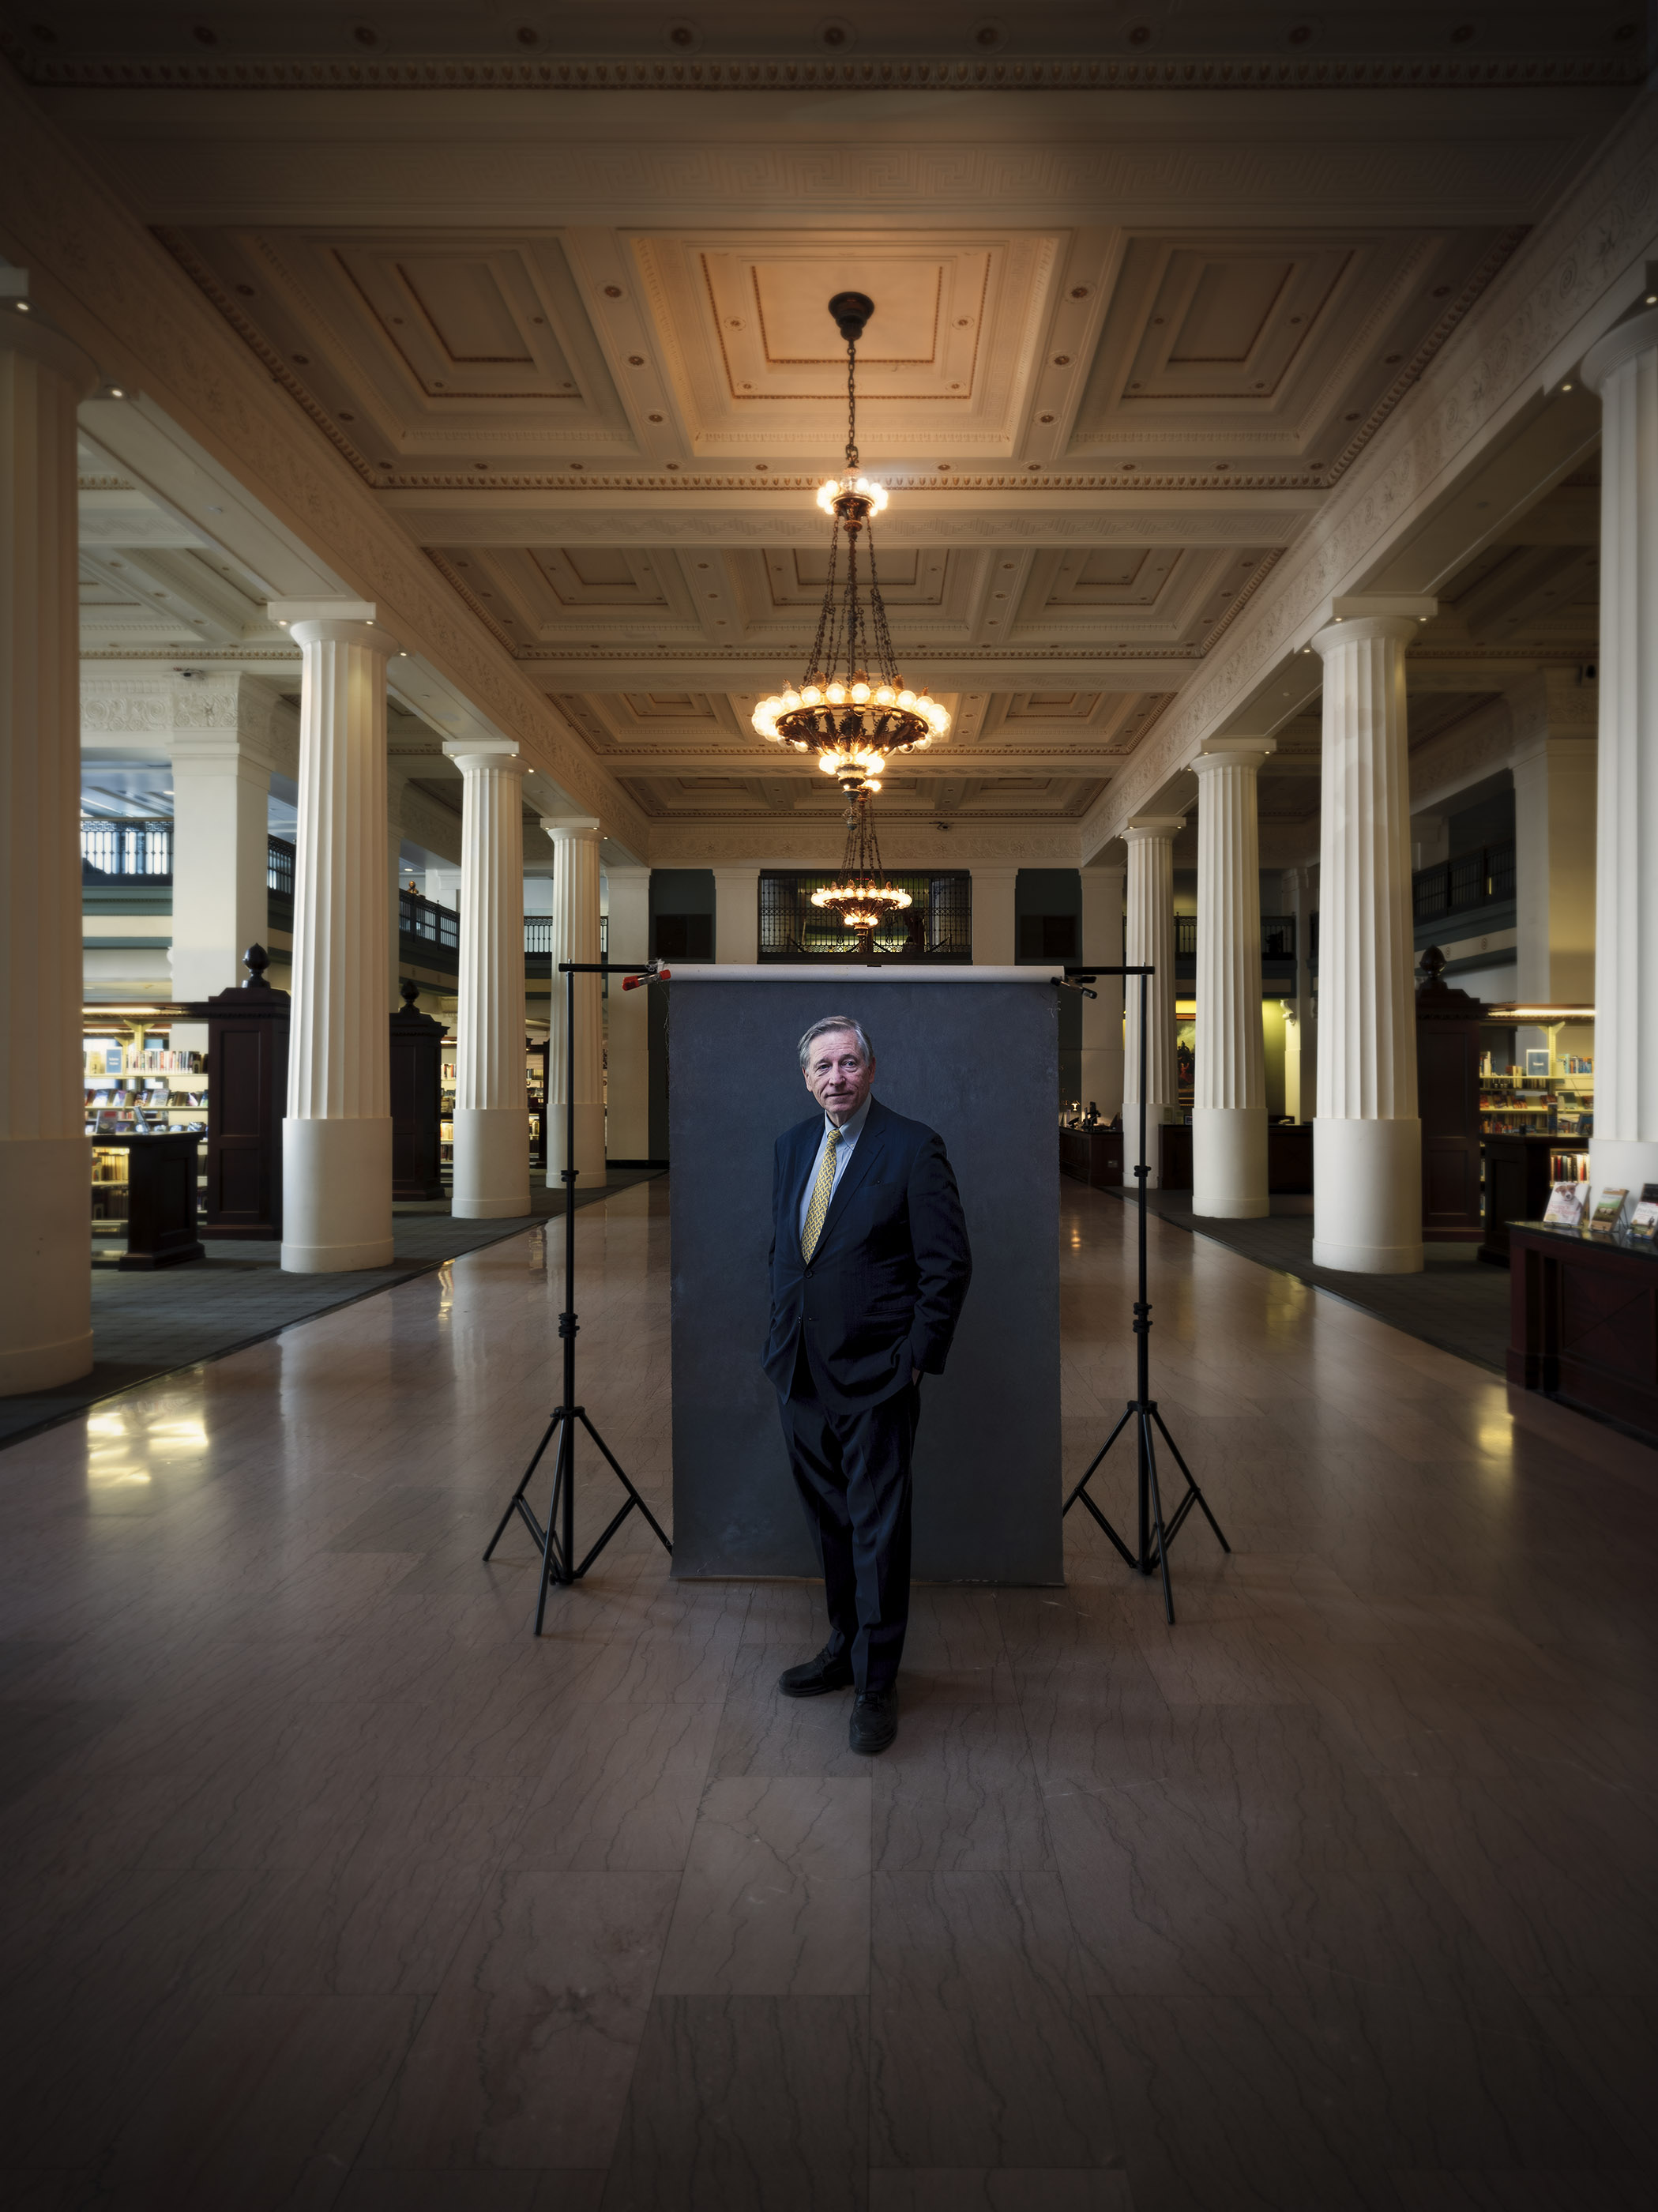 Portrait of Crosby Kemper III, director of the Kansas City Public Library.